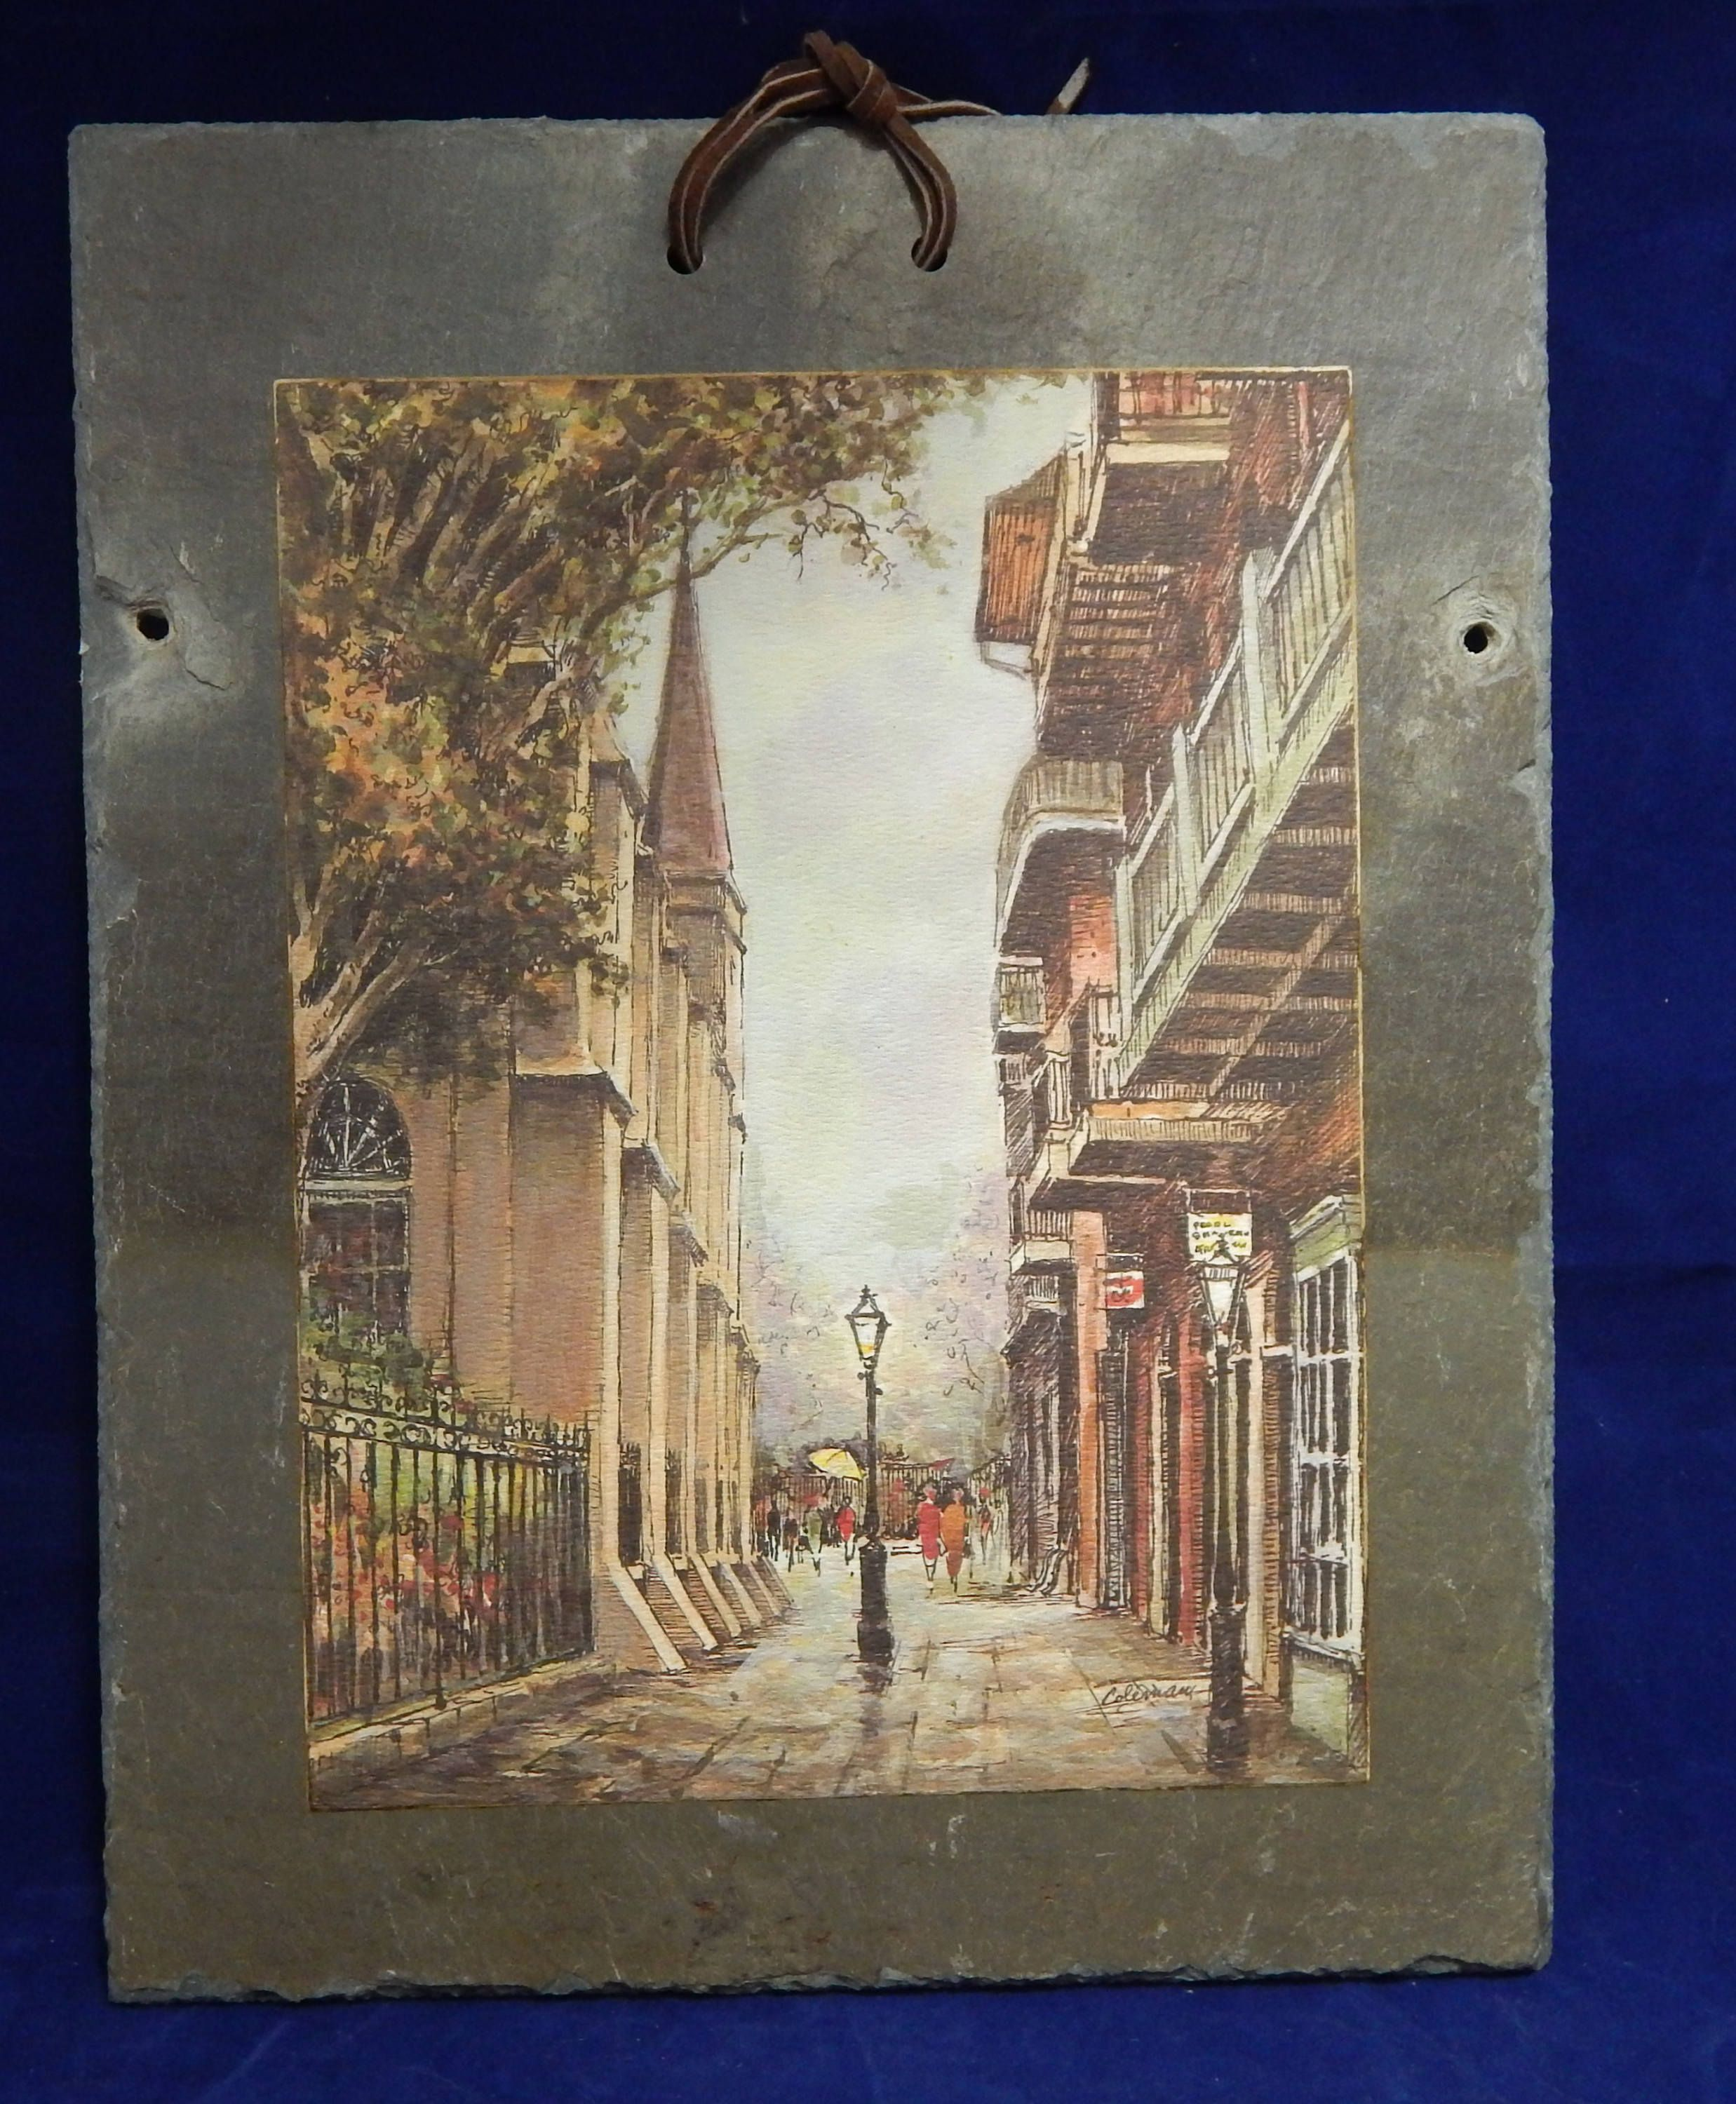 Vintage 11 X 14 Roofing Slate Artwork Of Pirates Alley New Orleans Louisiana Signed By Coleman By Ingrammasattic On Etsy Artwork Vintage Roofing